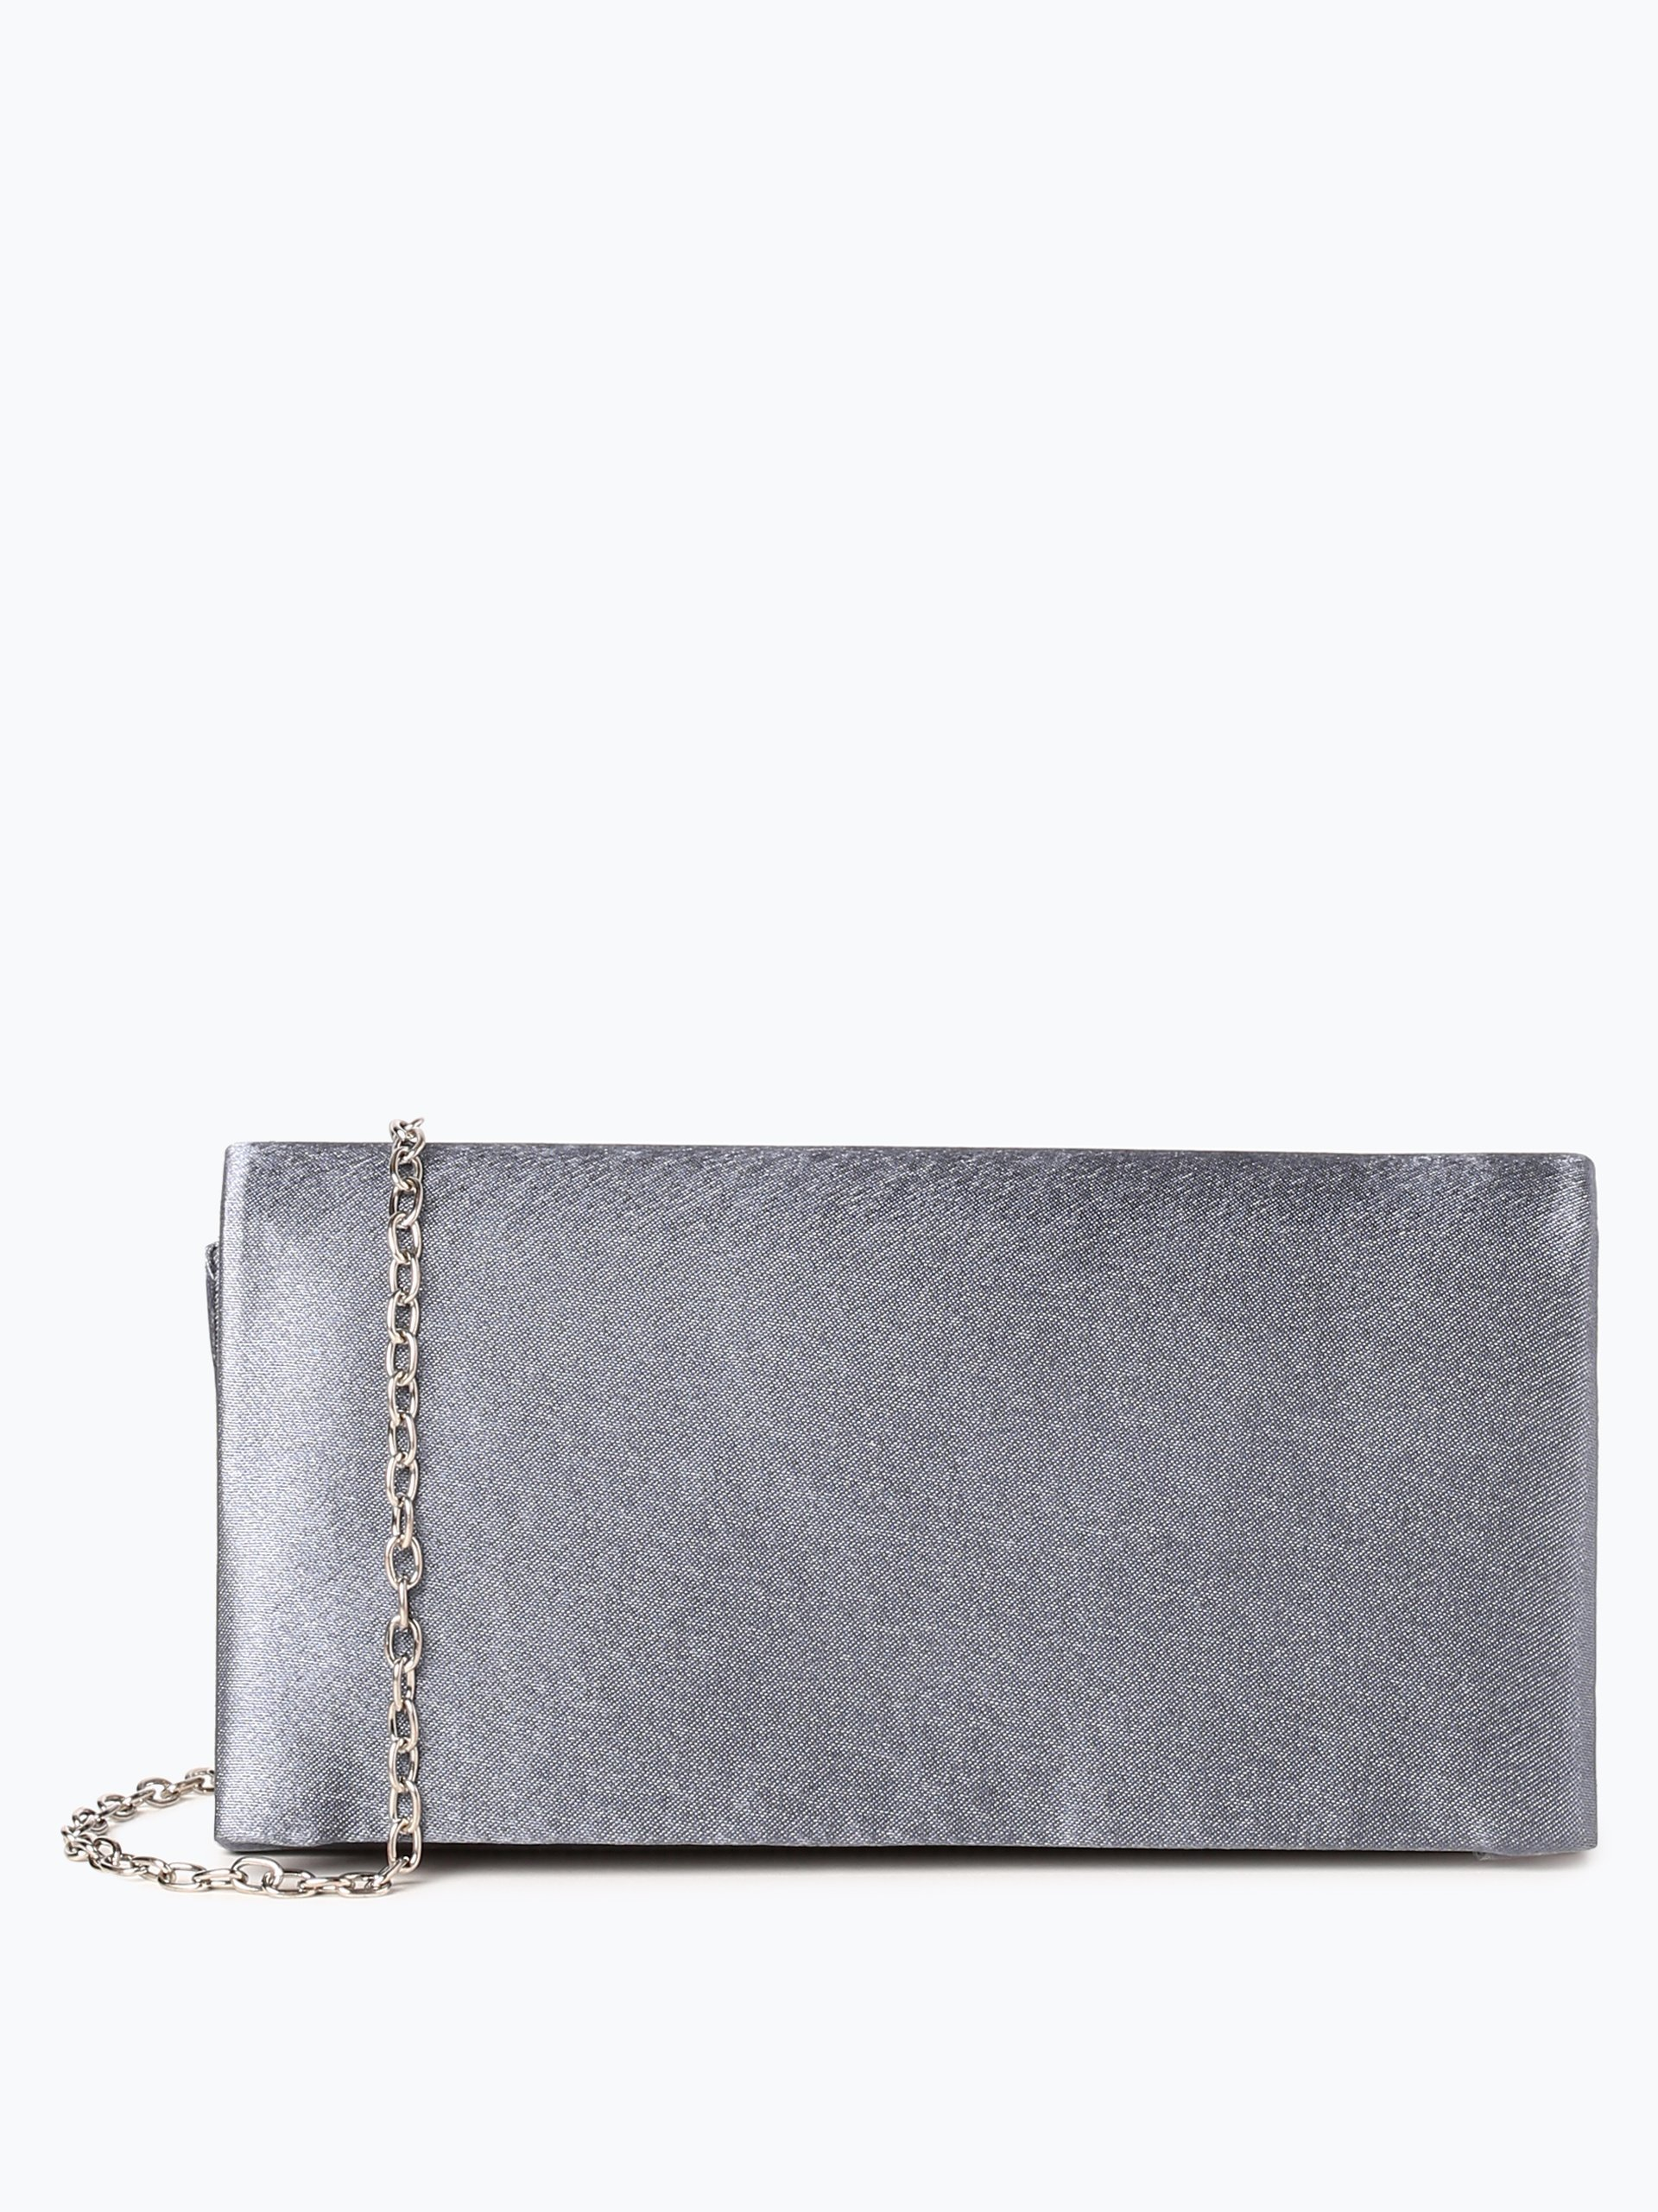 Kurt Kölln Damen Clutch